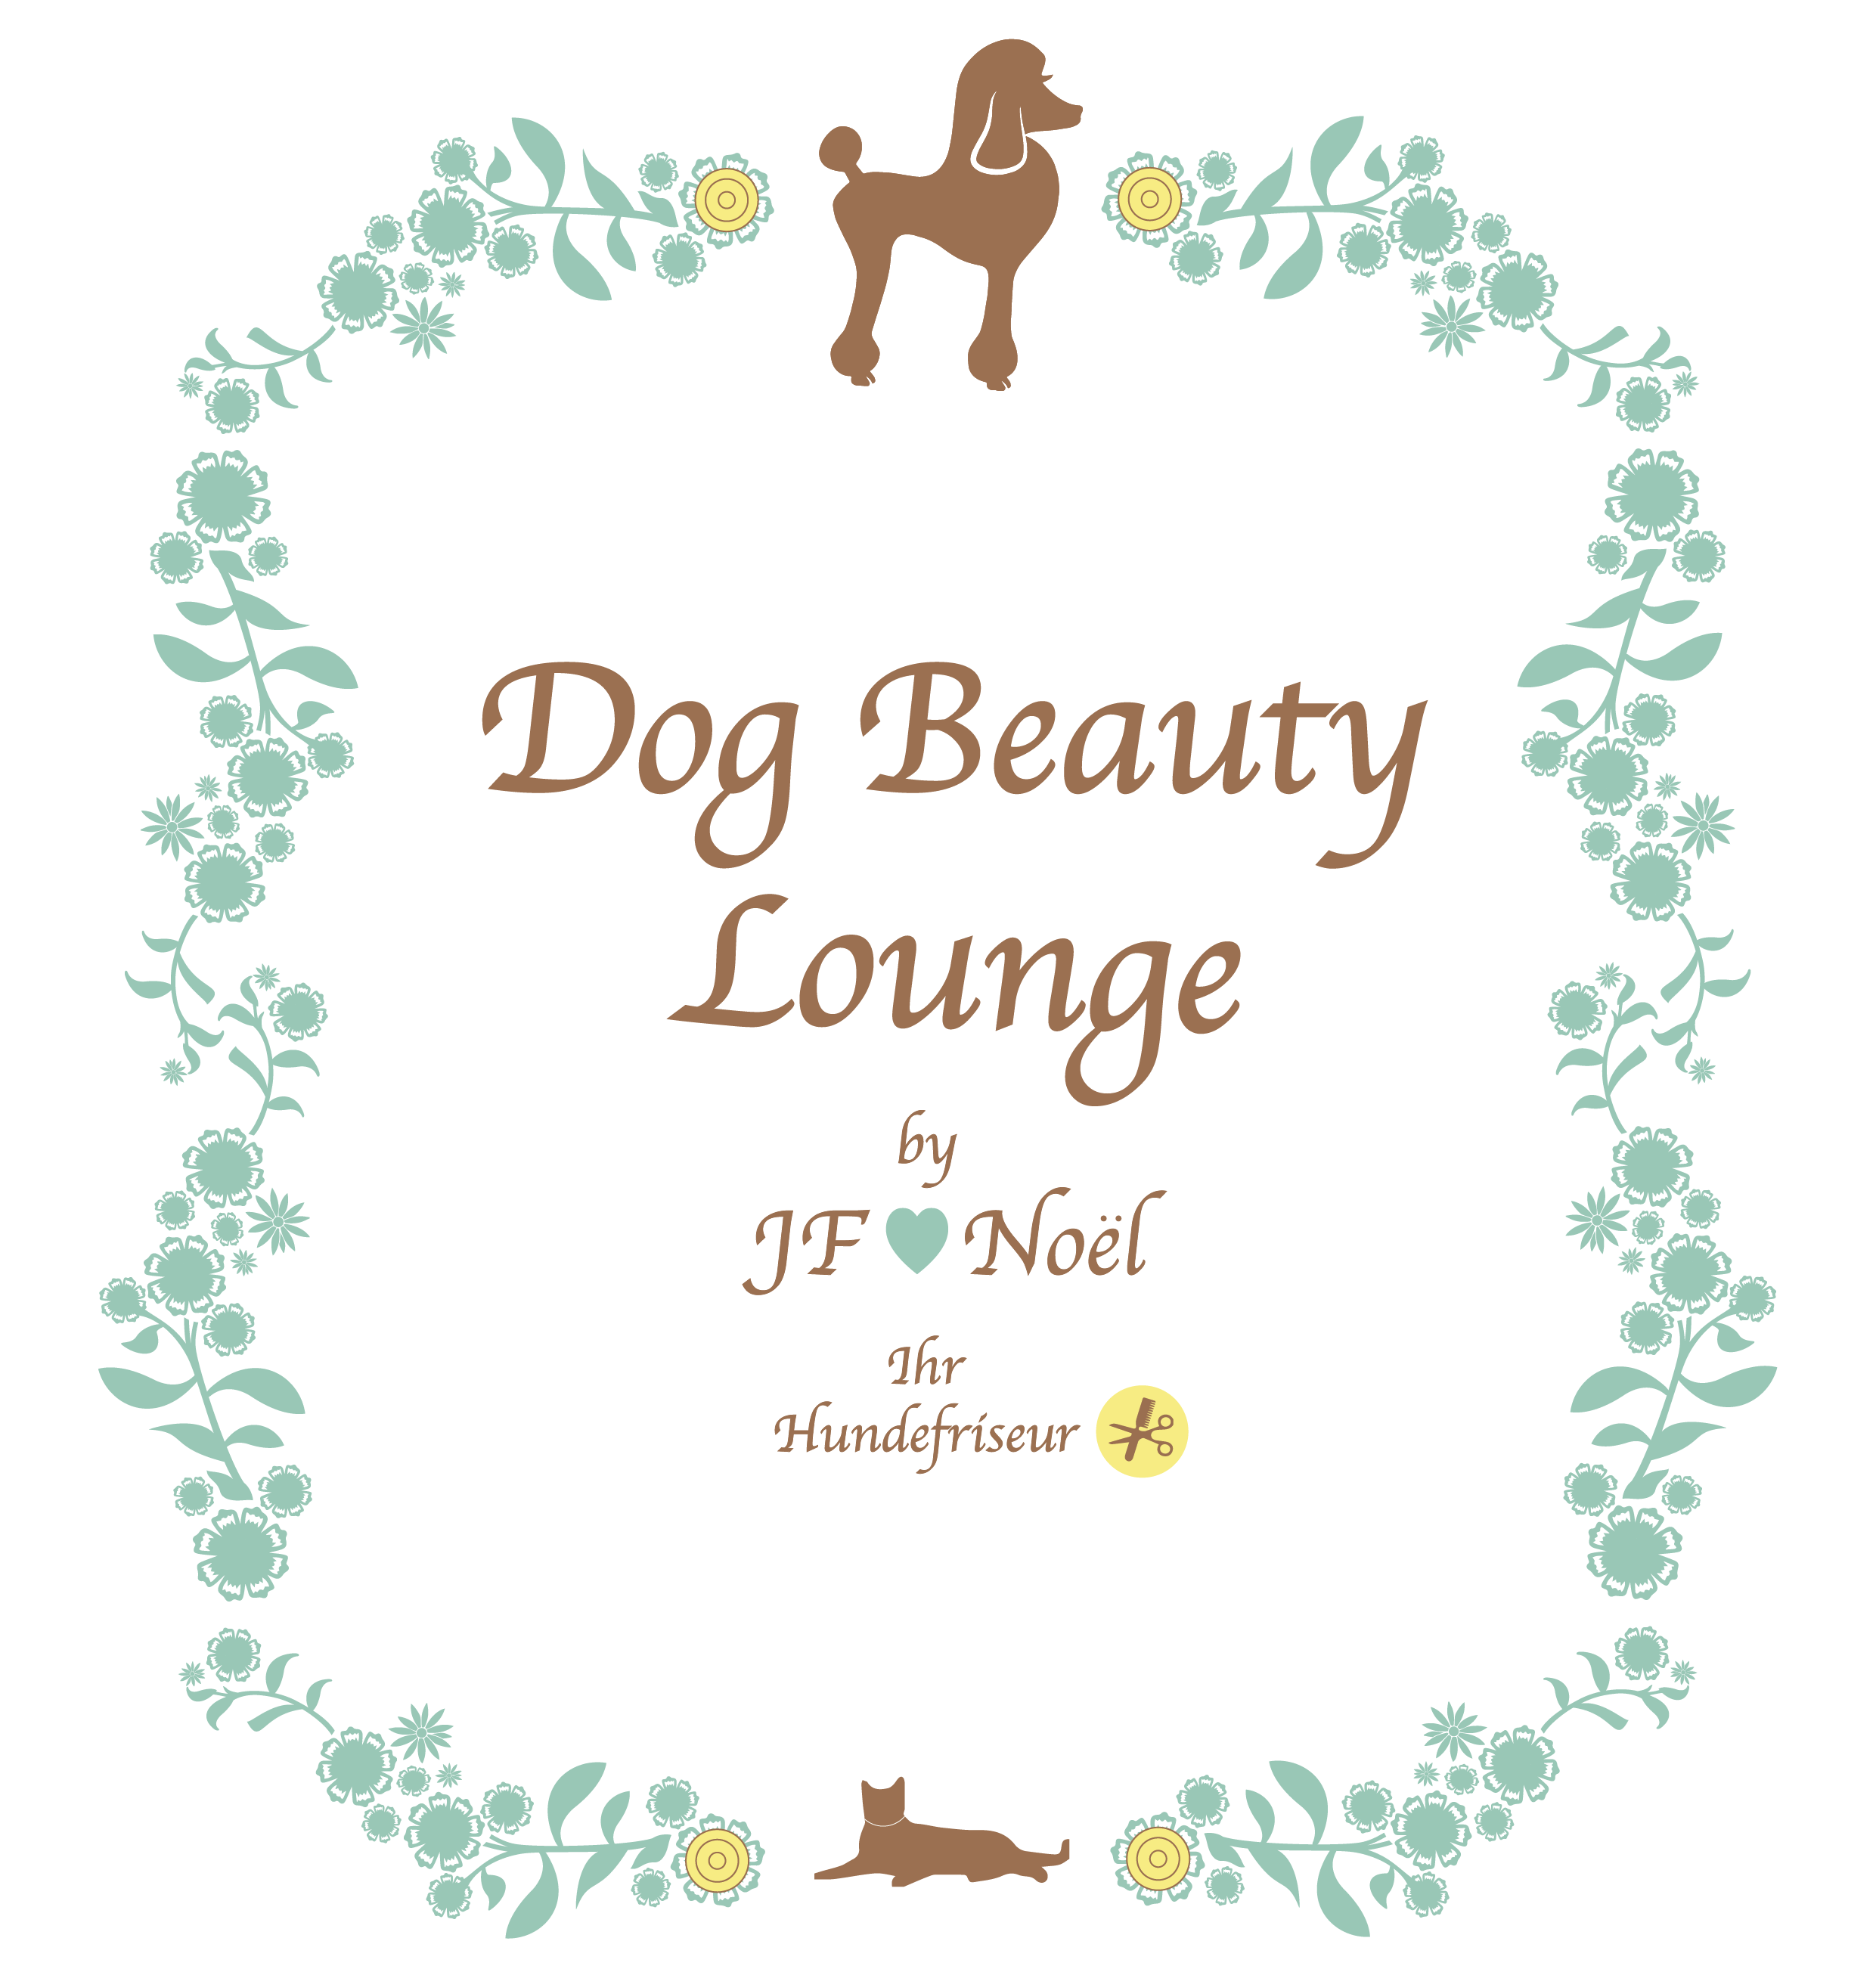 Dog Beauty Lounge